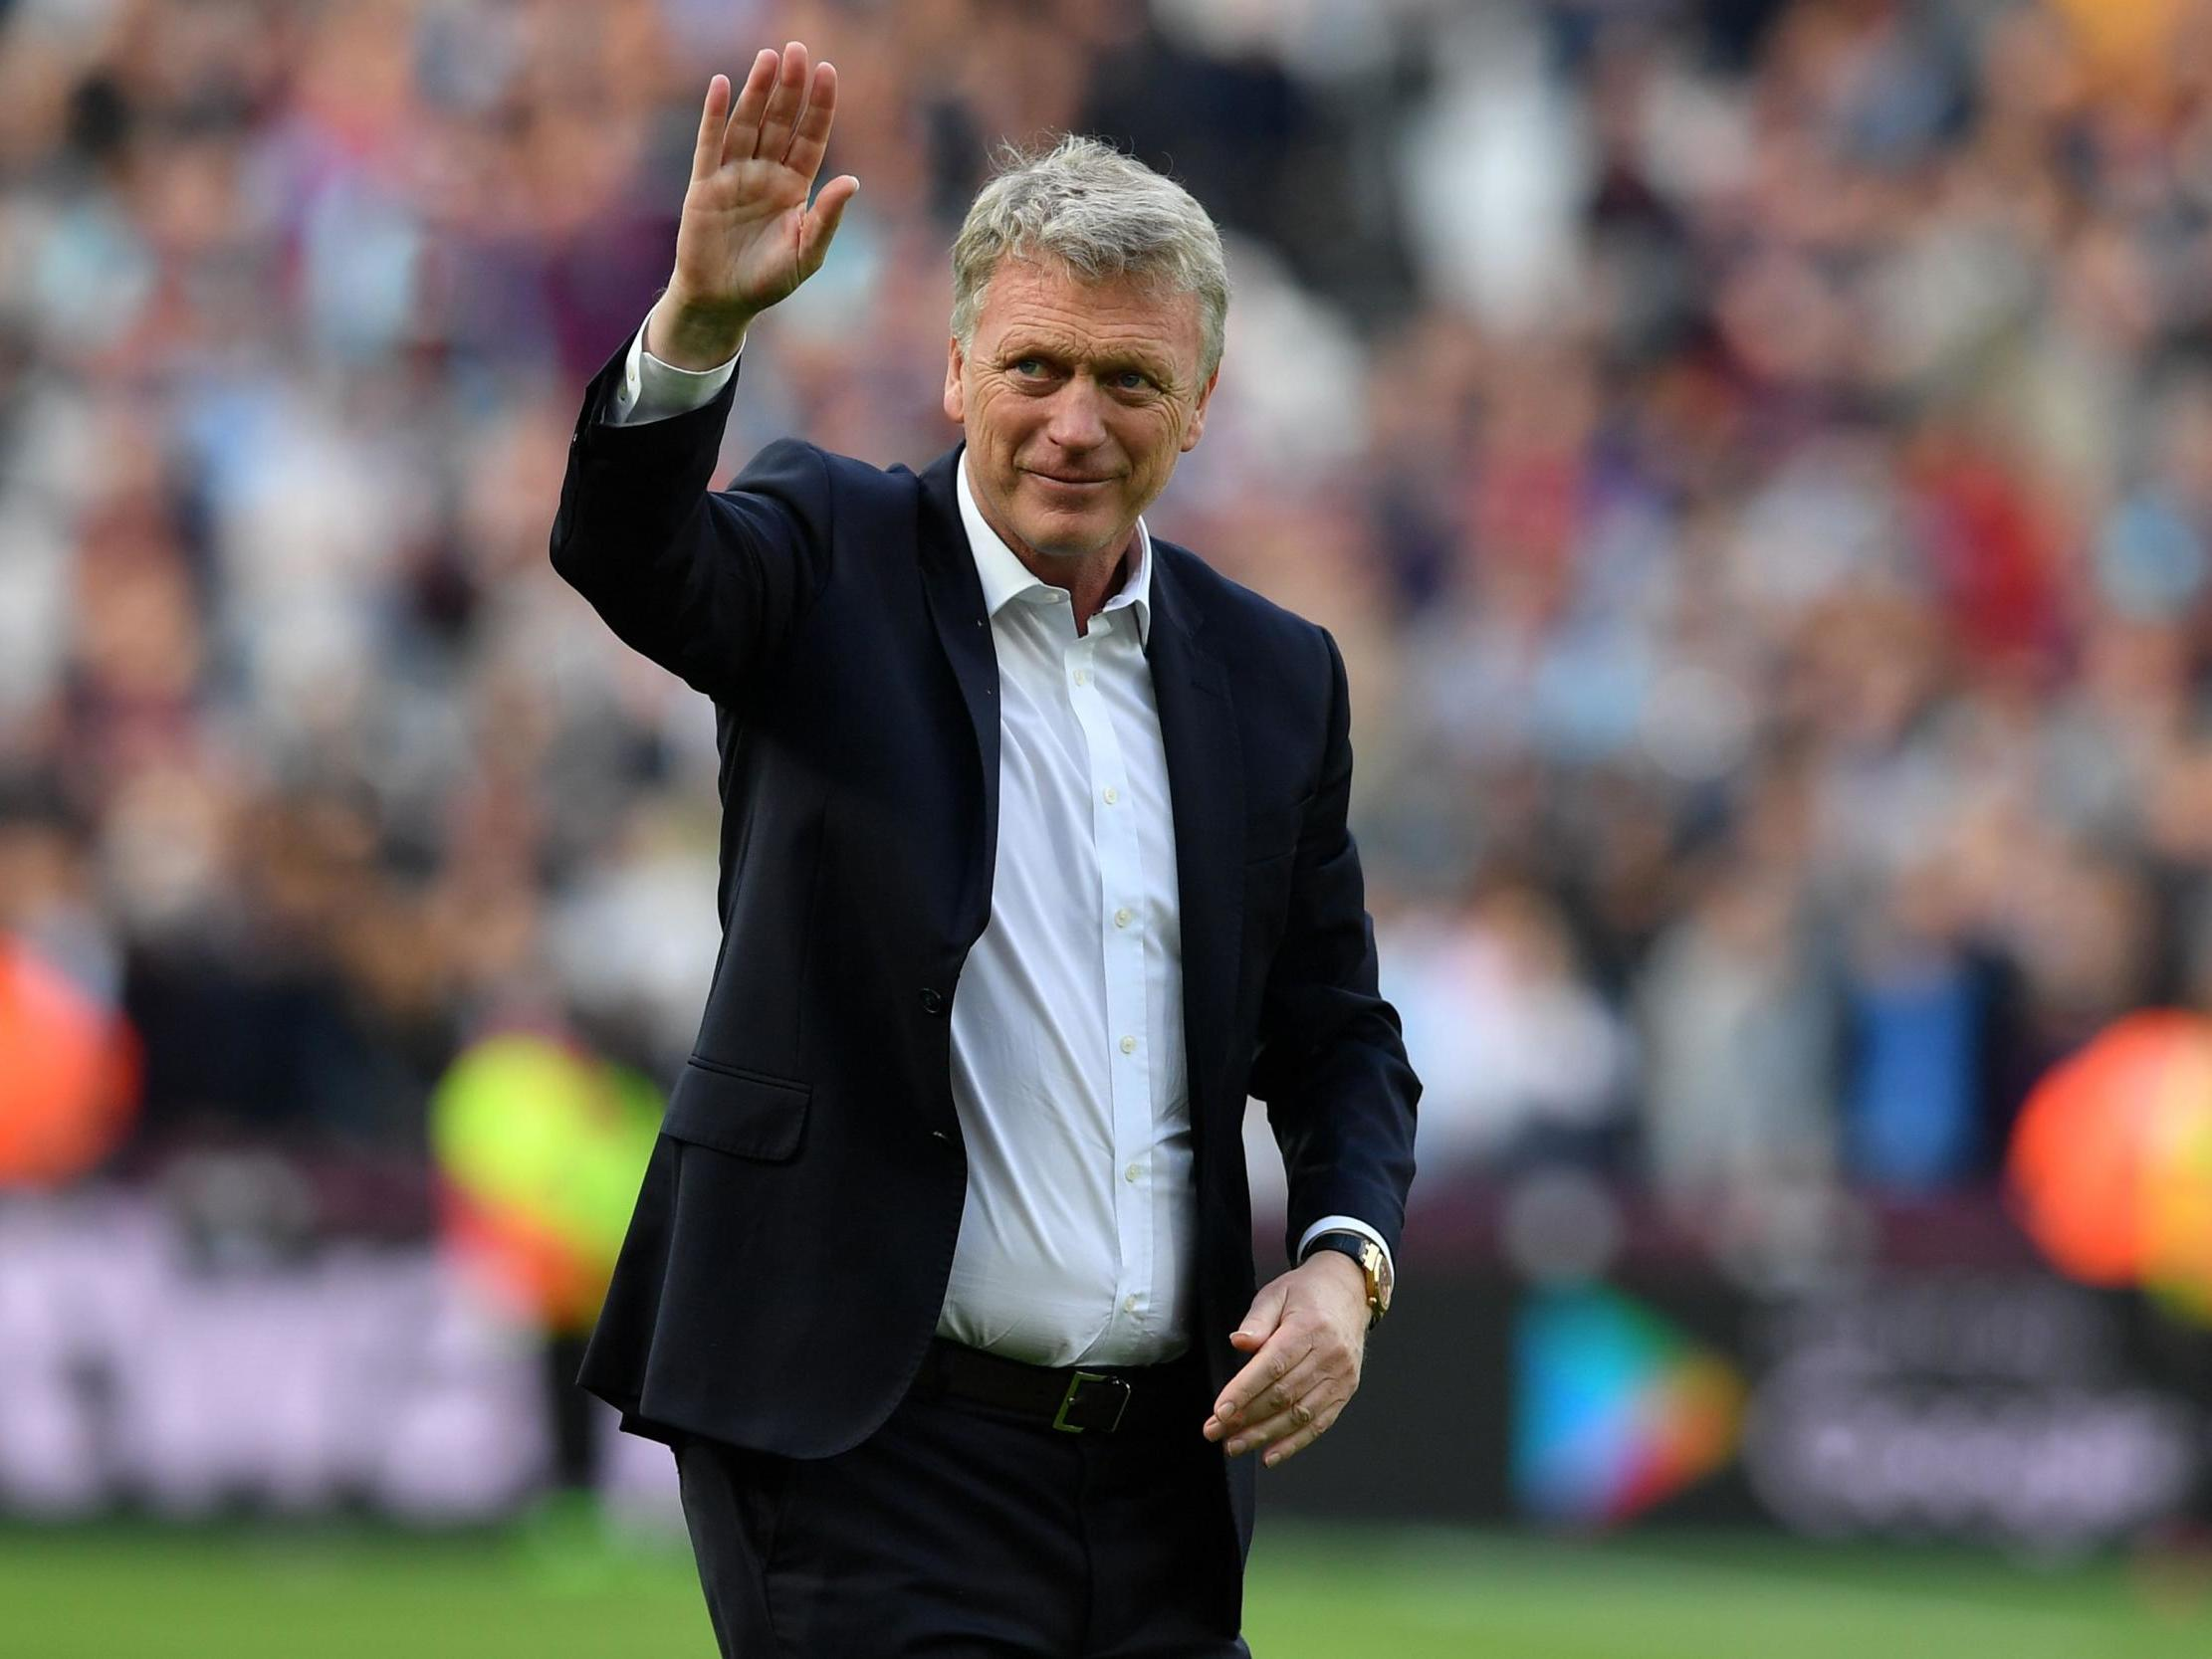 Scot returns to London Stadium on long-term contract after initial six-month spell in charge during 2017/18 campaign